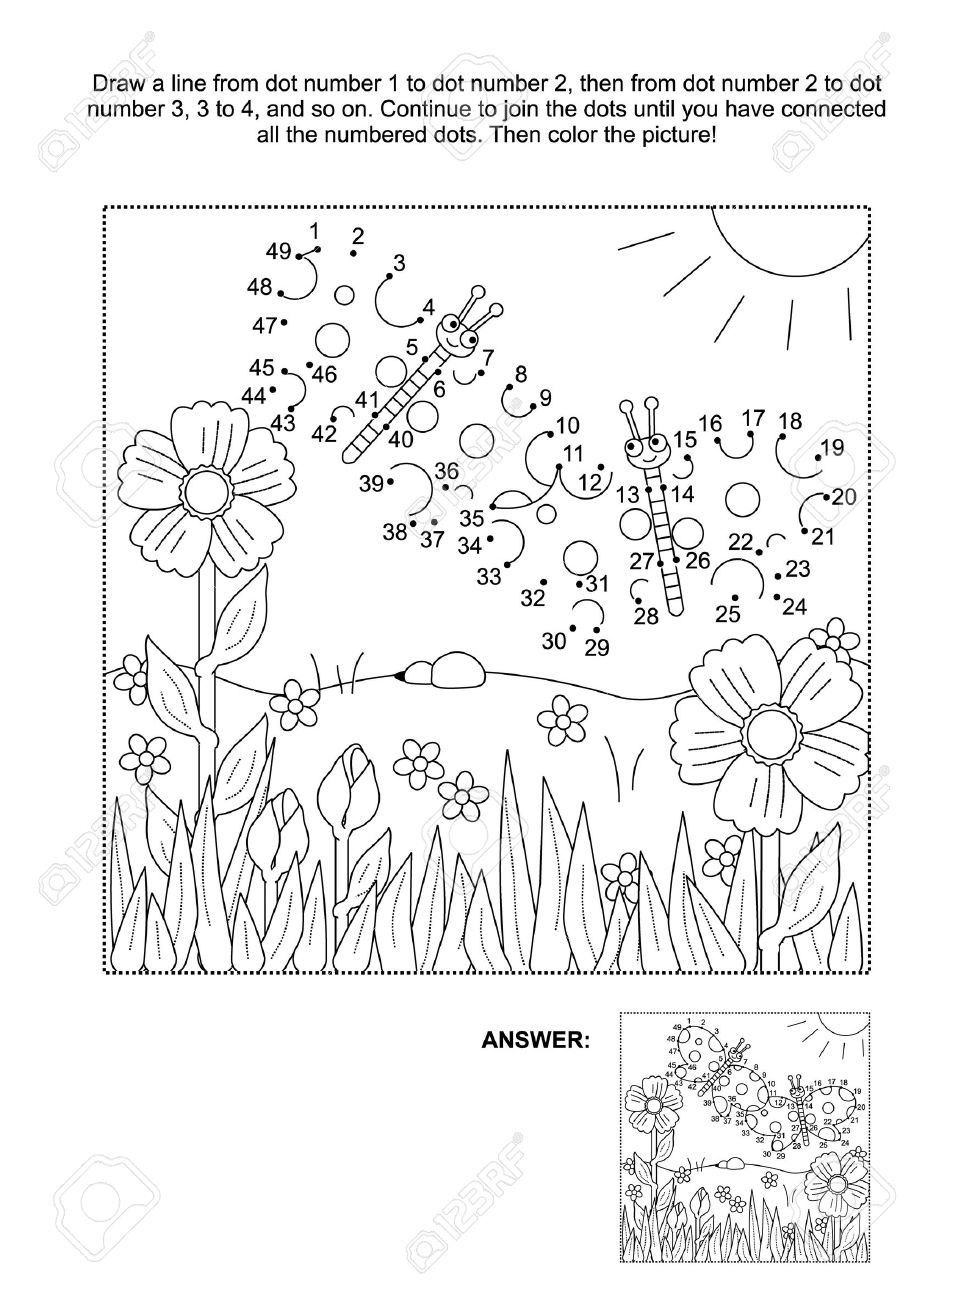 Spring coloring pages dot to dot - Connect The Dots Picture Puzzle And Coloring Page Spring Or Summer Joy Themed With